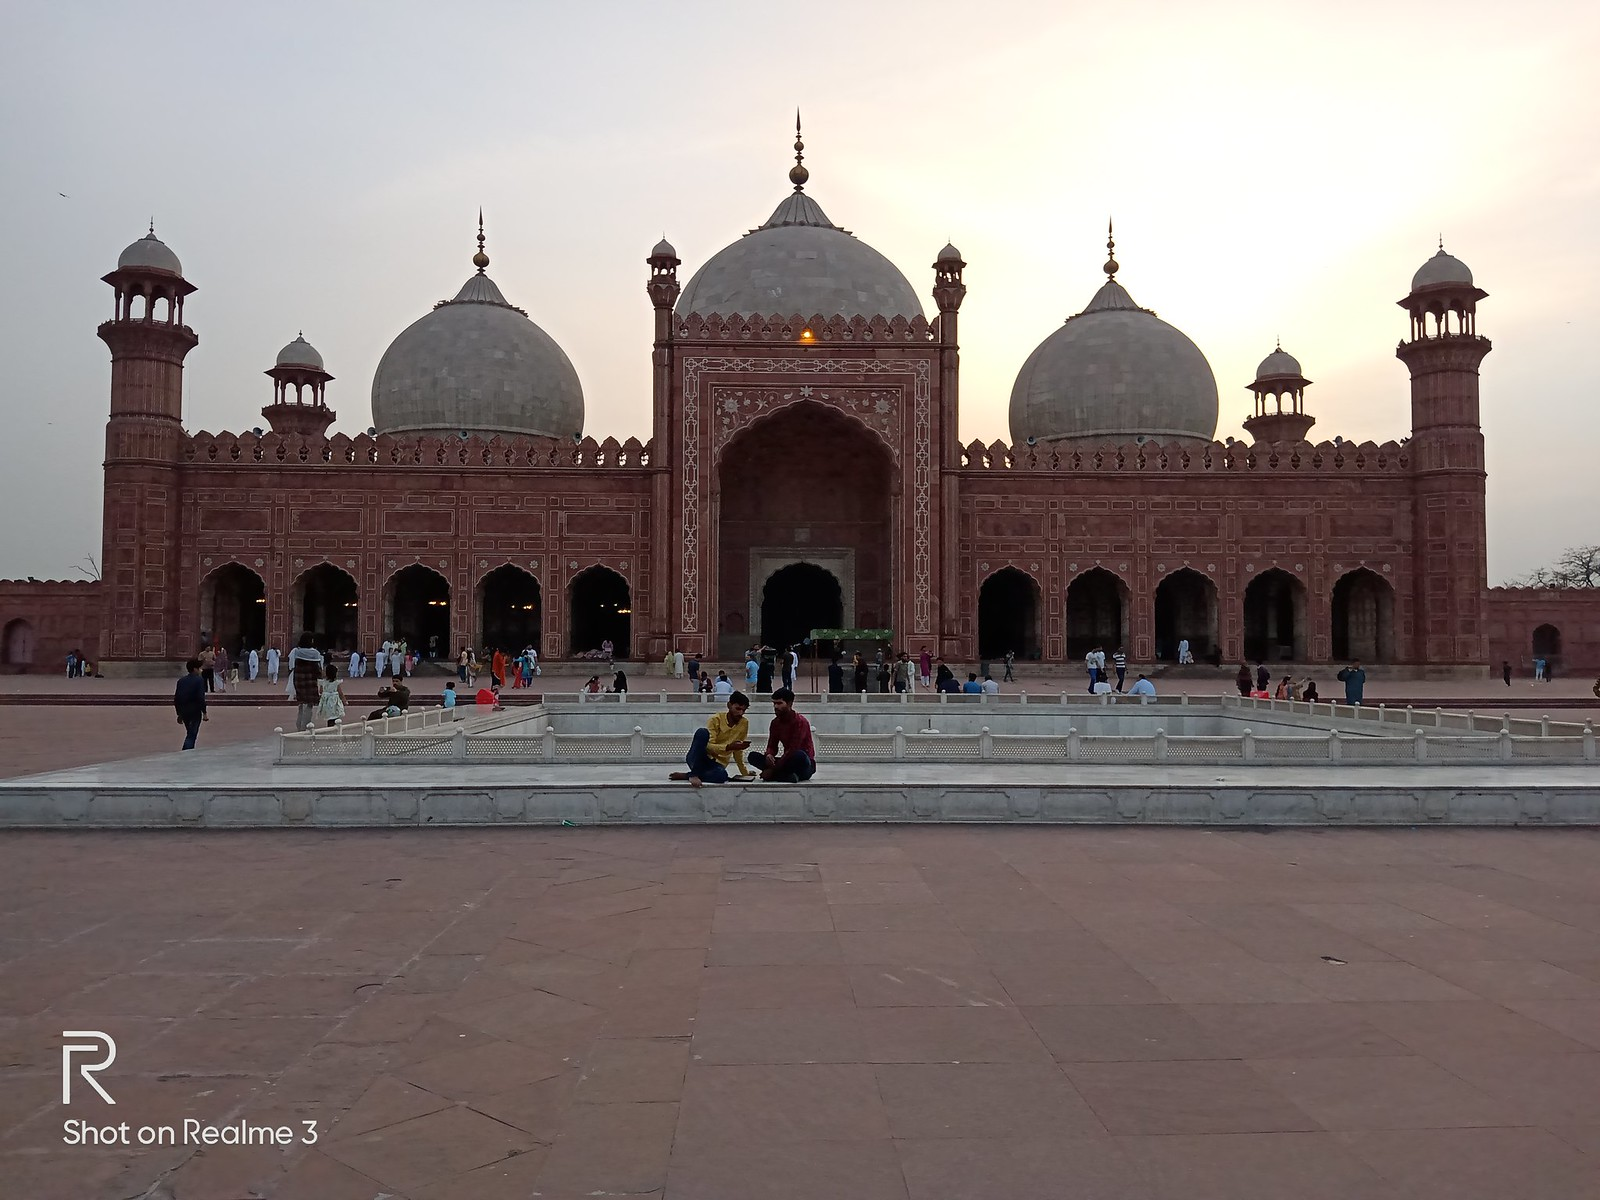 Badshahi Mosque Picture with Auto Mode on Realme 3